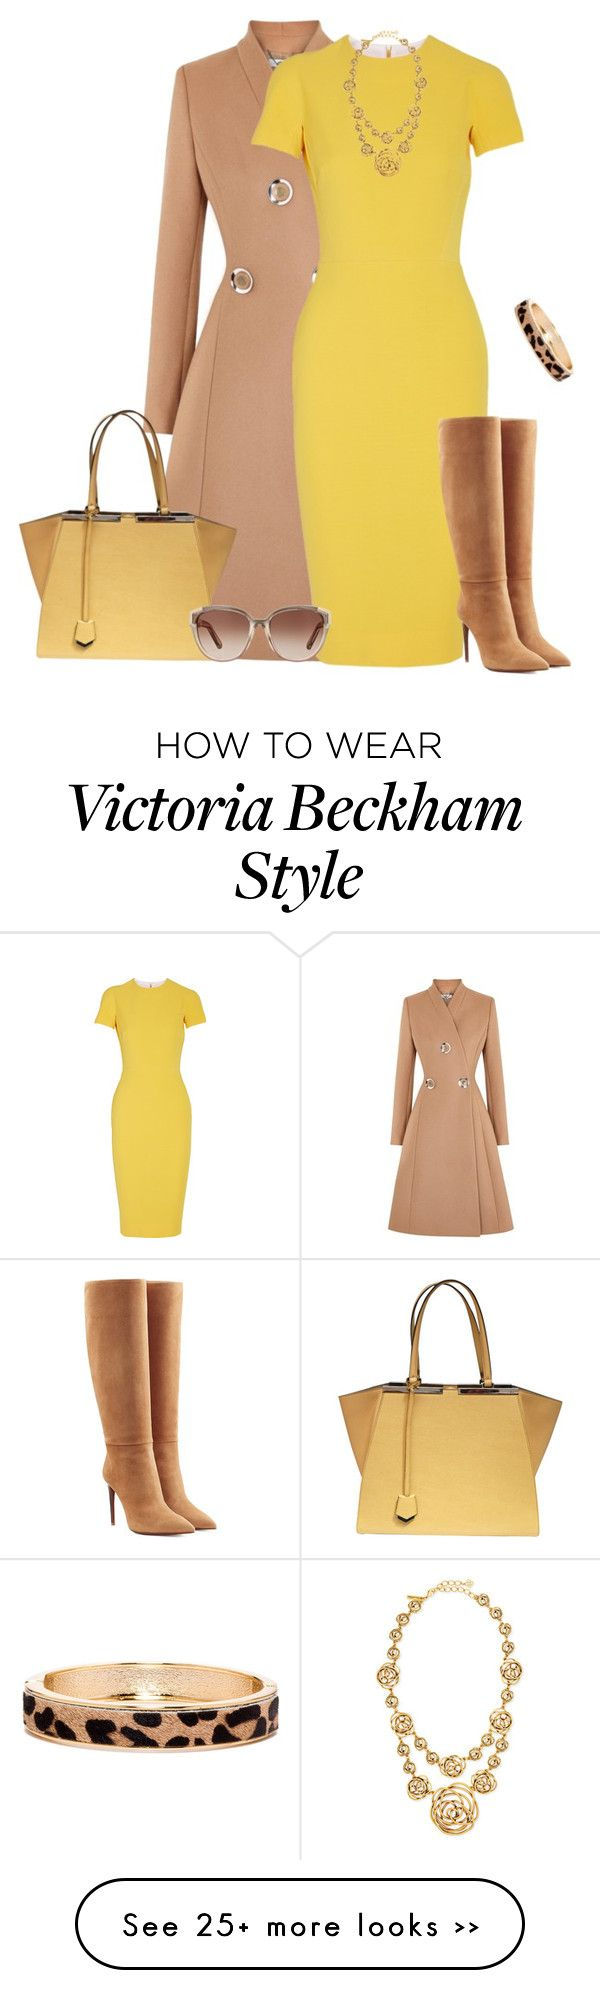 """""""outfit 2244"""" by natalyag on Polyvore"""